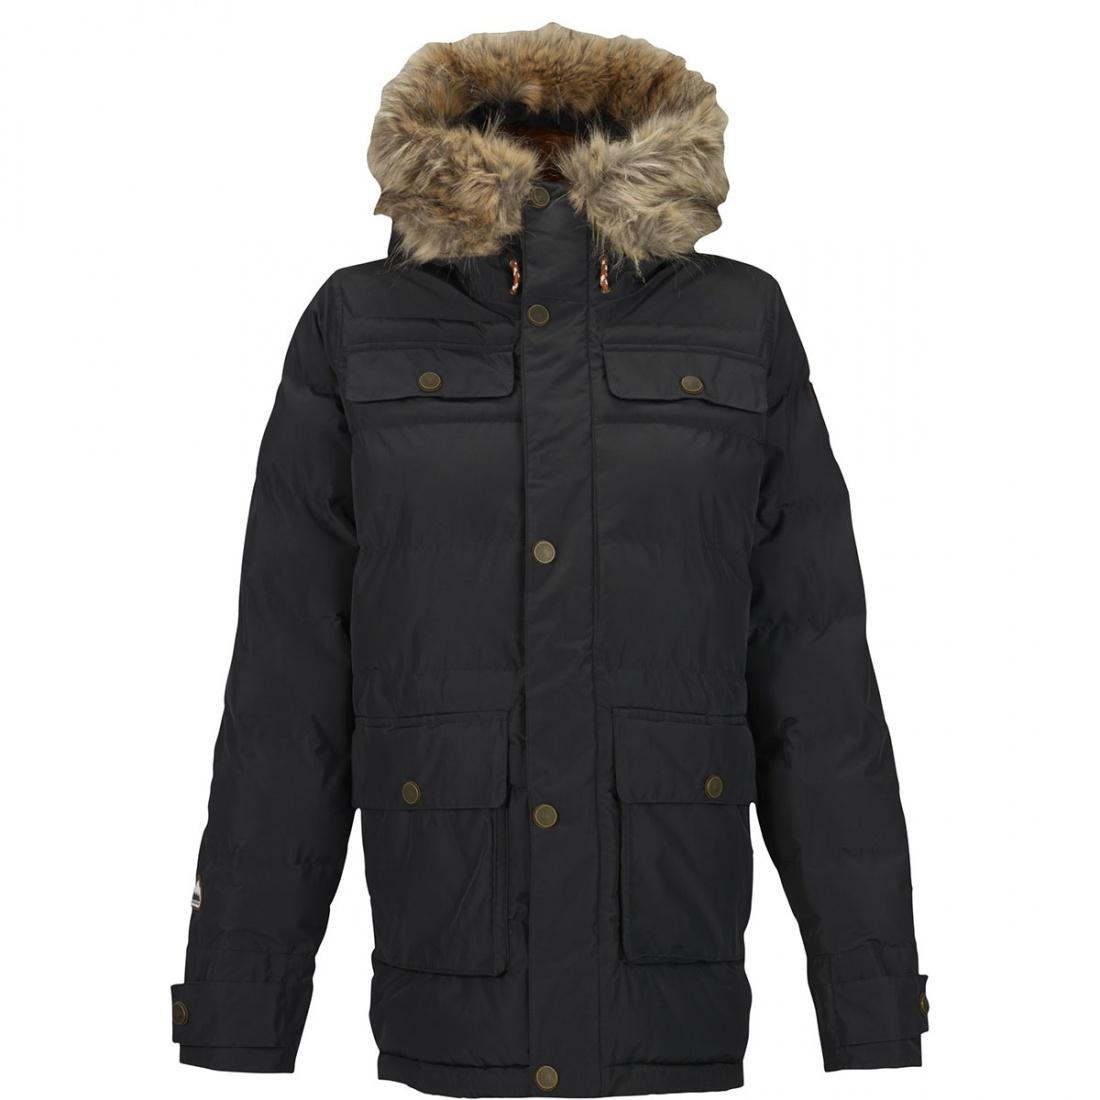 Burton Куртка для сноуборда Burton Essex Puffy TRUE BLACK S hamlet